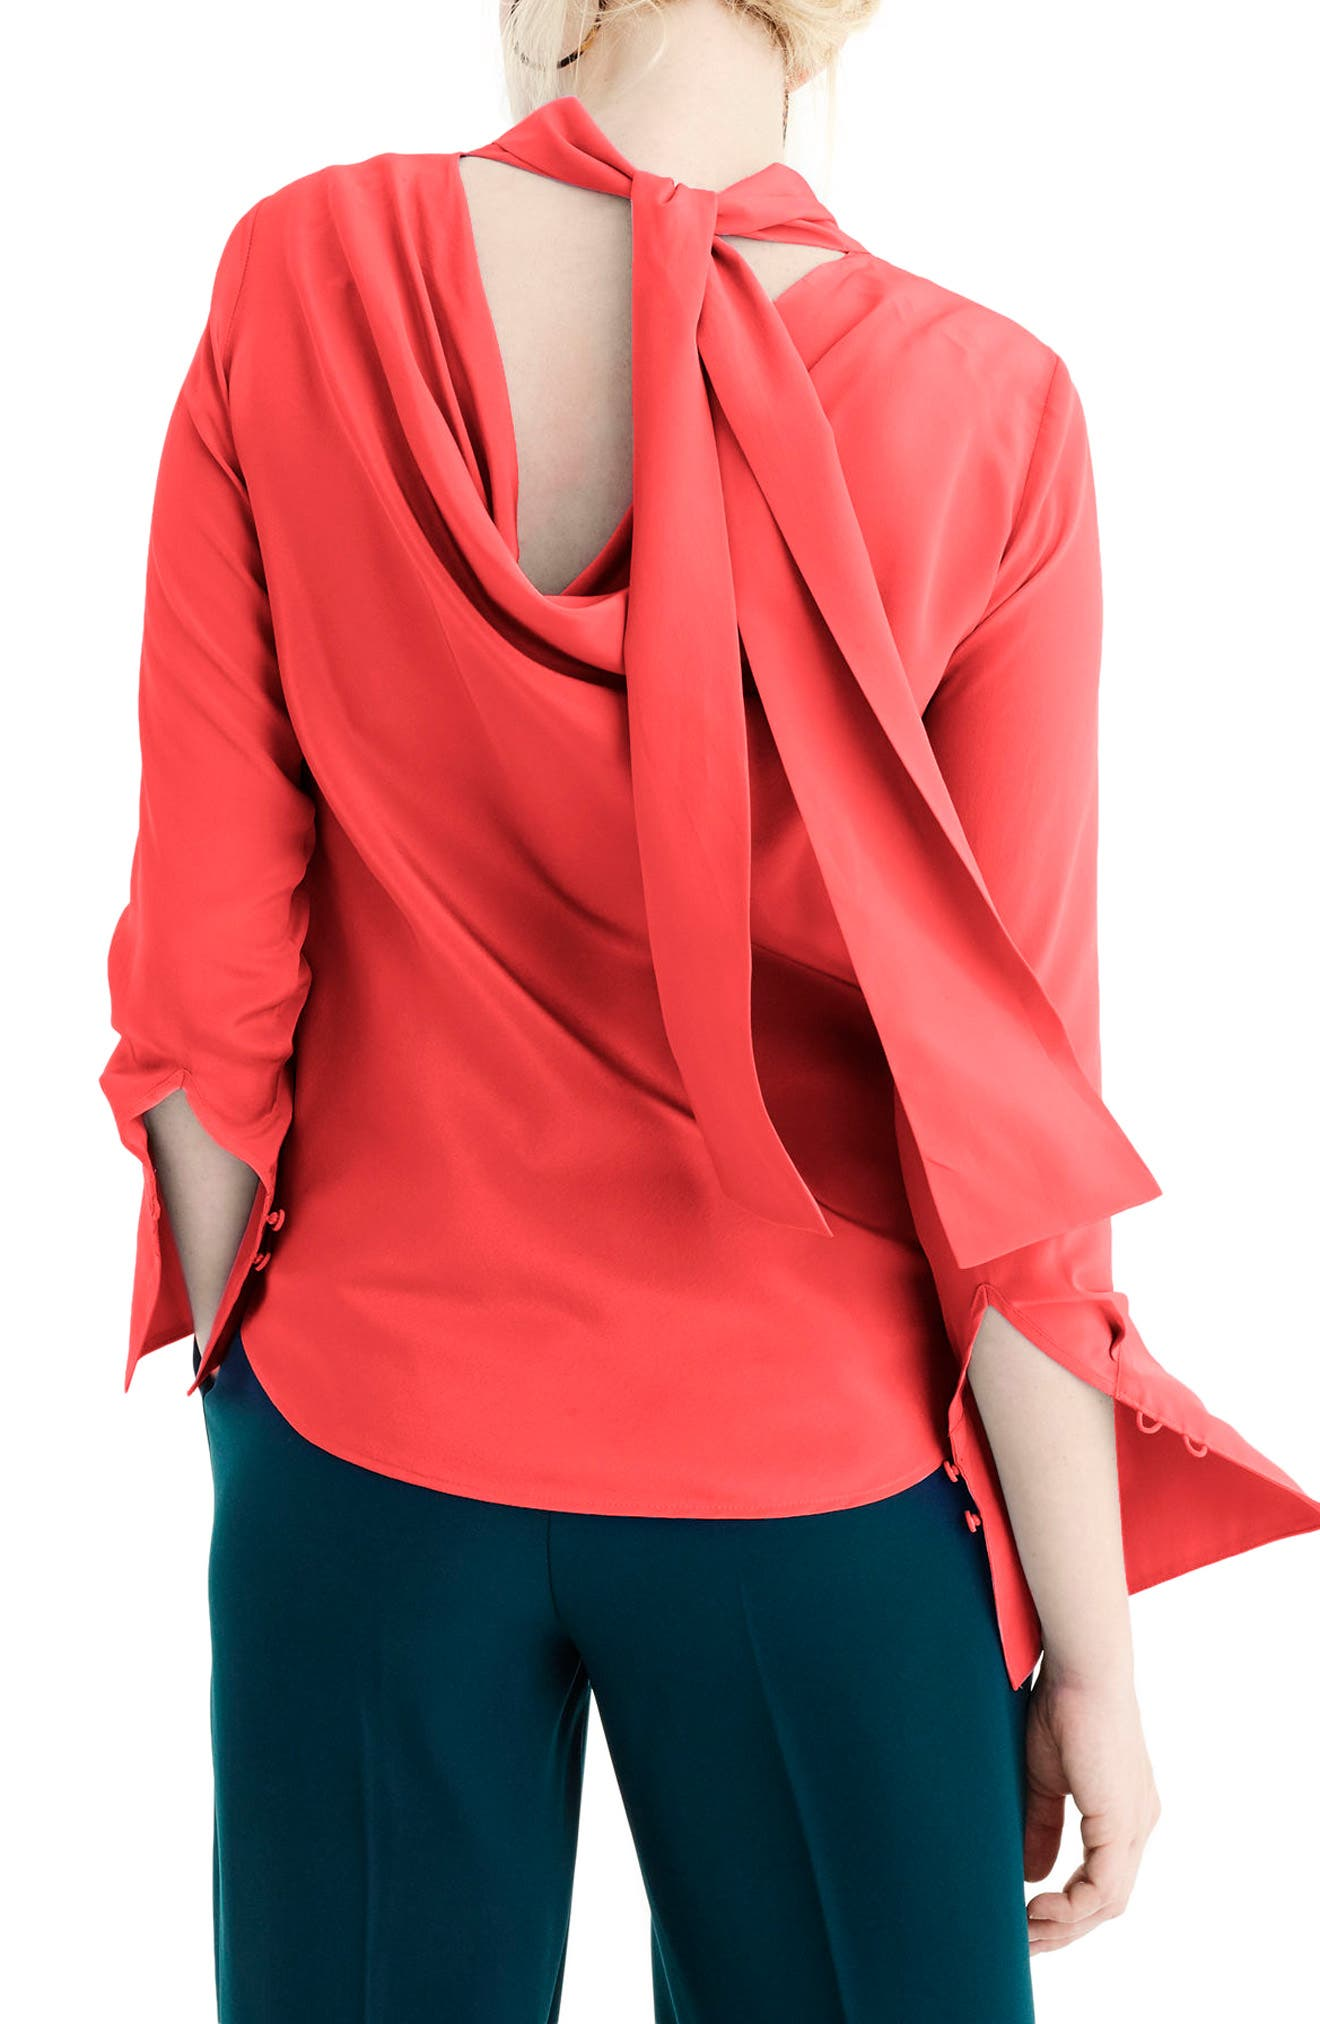 J.Crew Howl Reversible Silk Top,                             Alternate thumbnail 2, color,                             Vibrant Flame